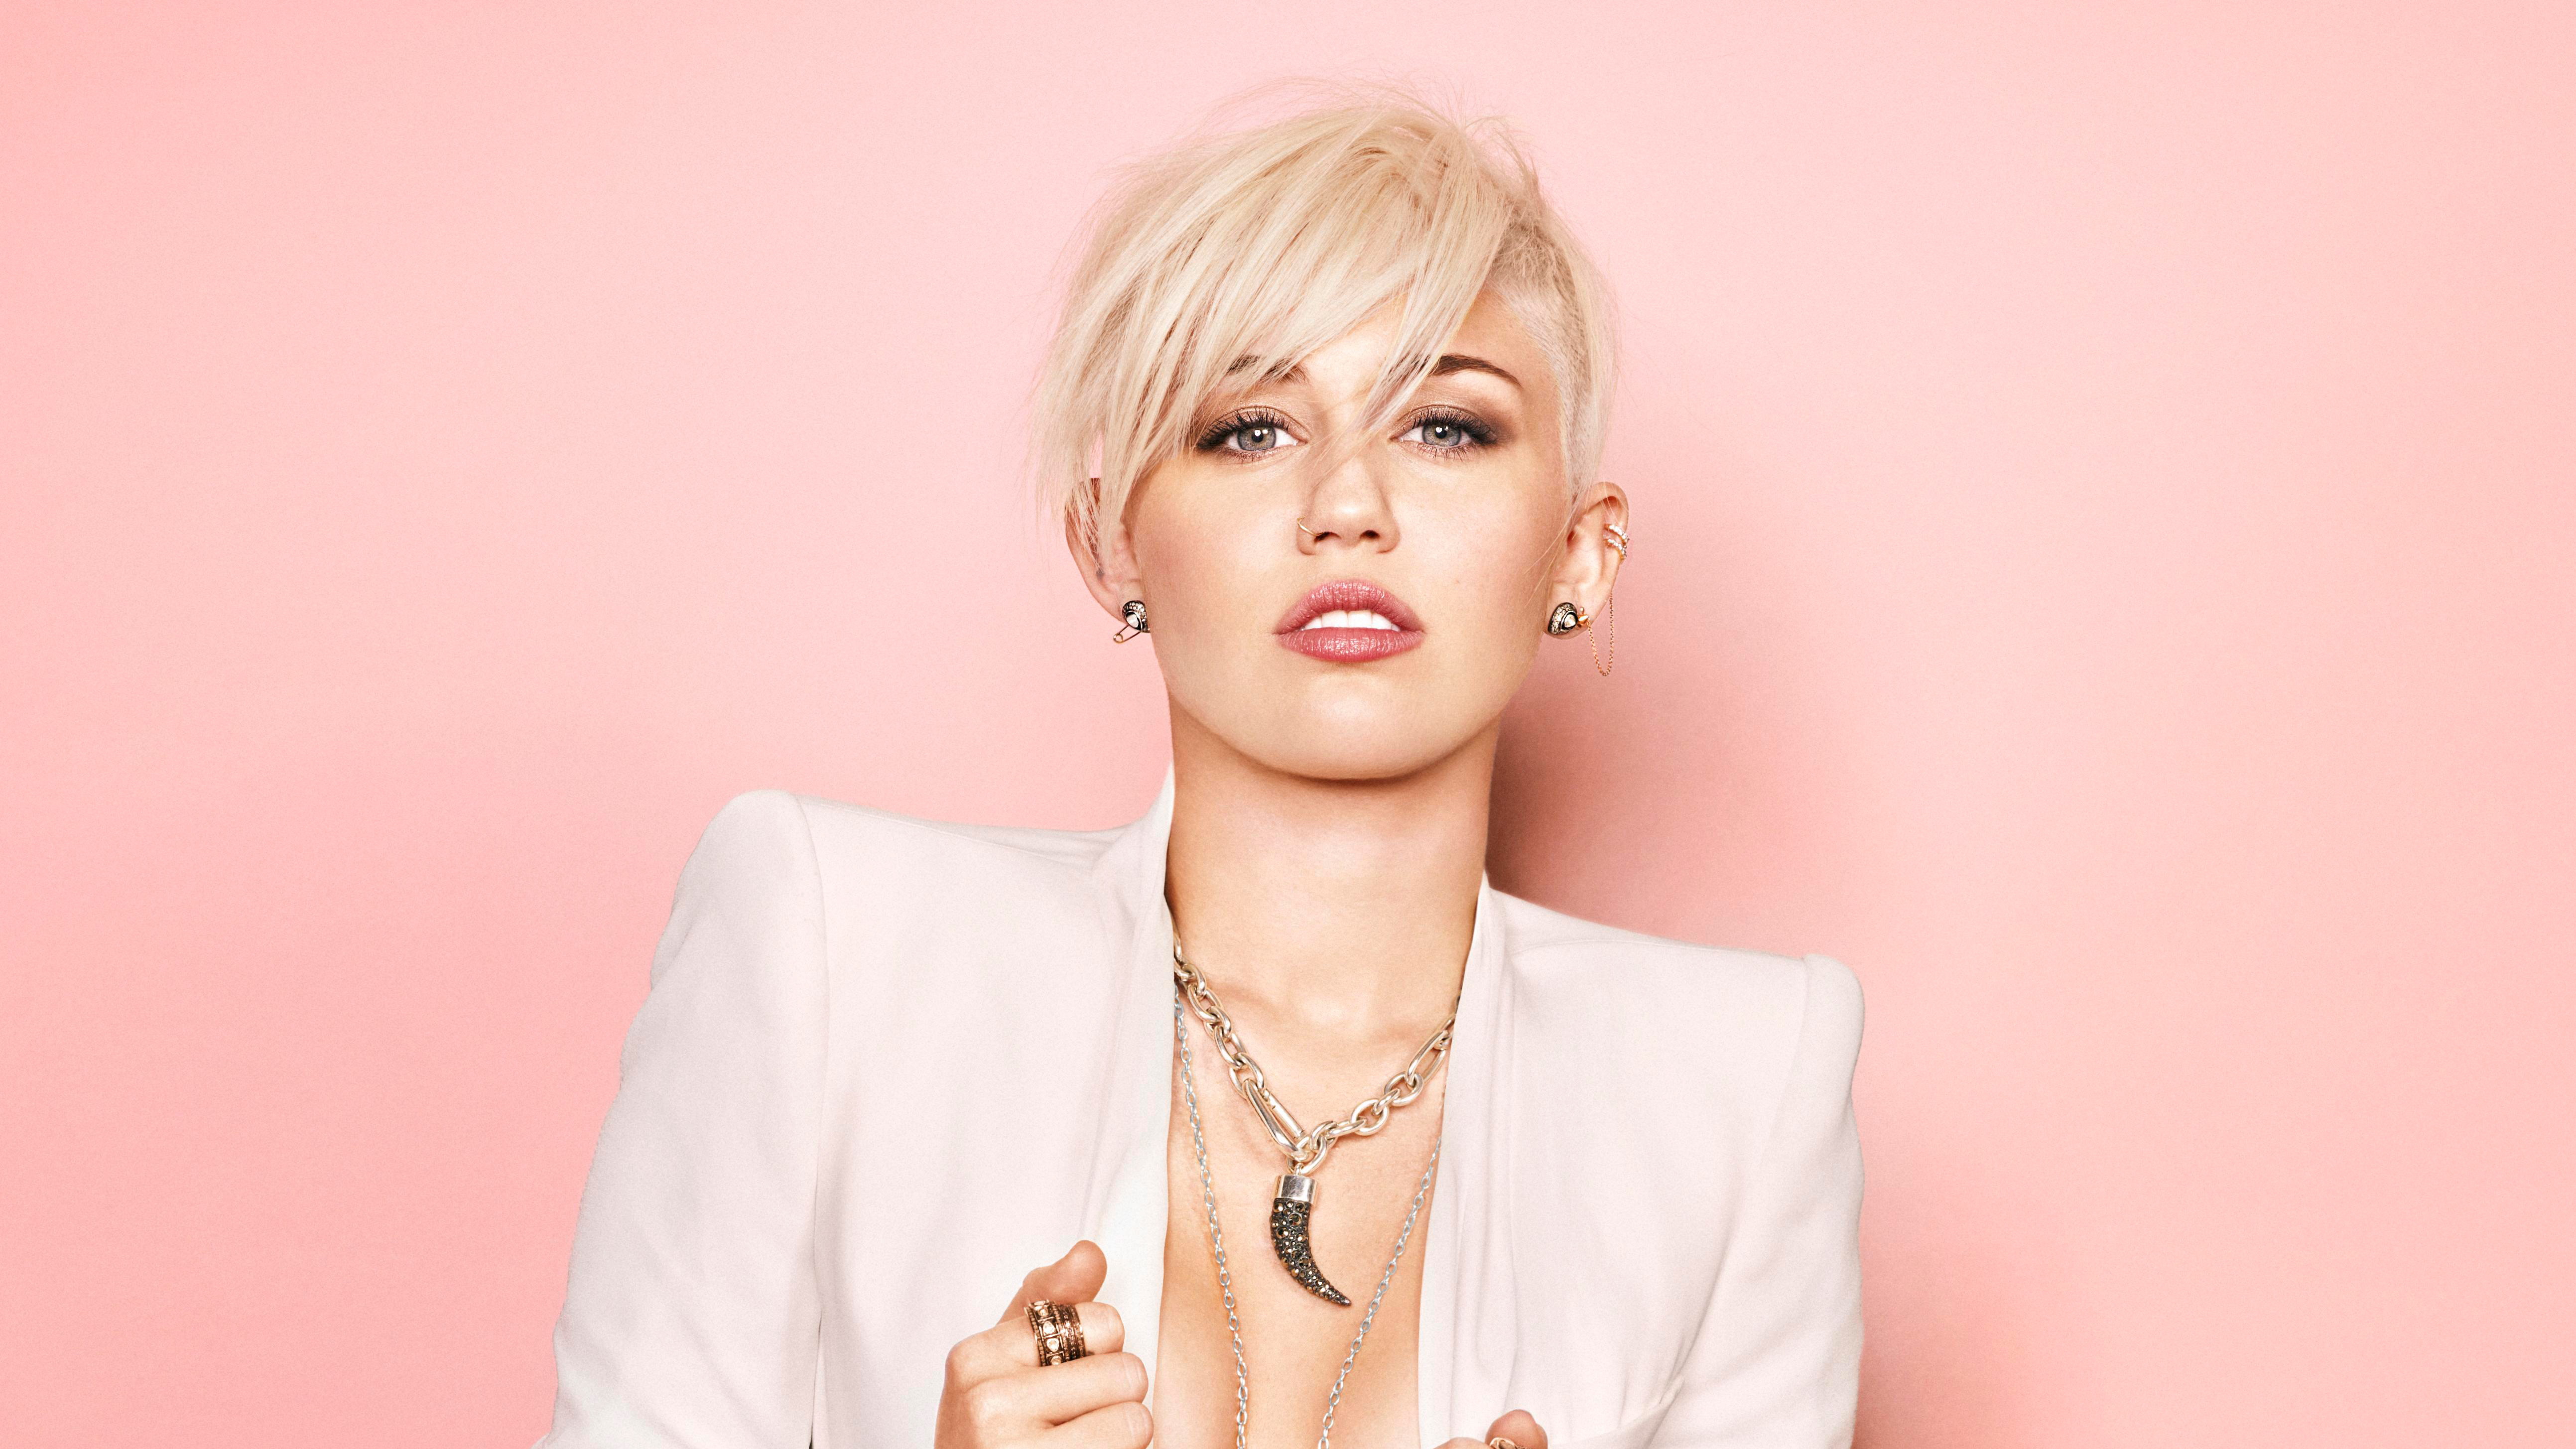 miley, Cyrus, Singer, Pop, Celebrity, Actress, Sexy, Babe